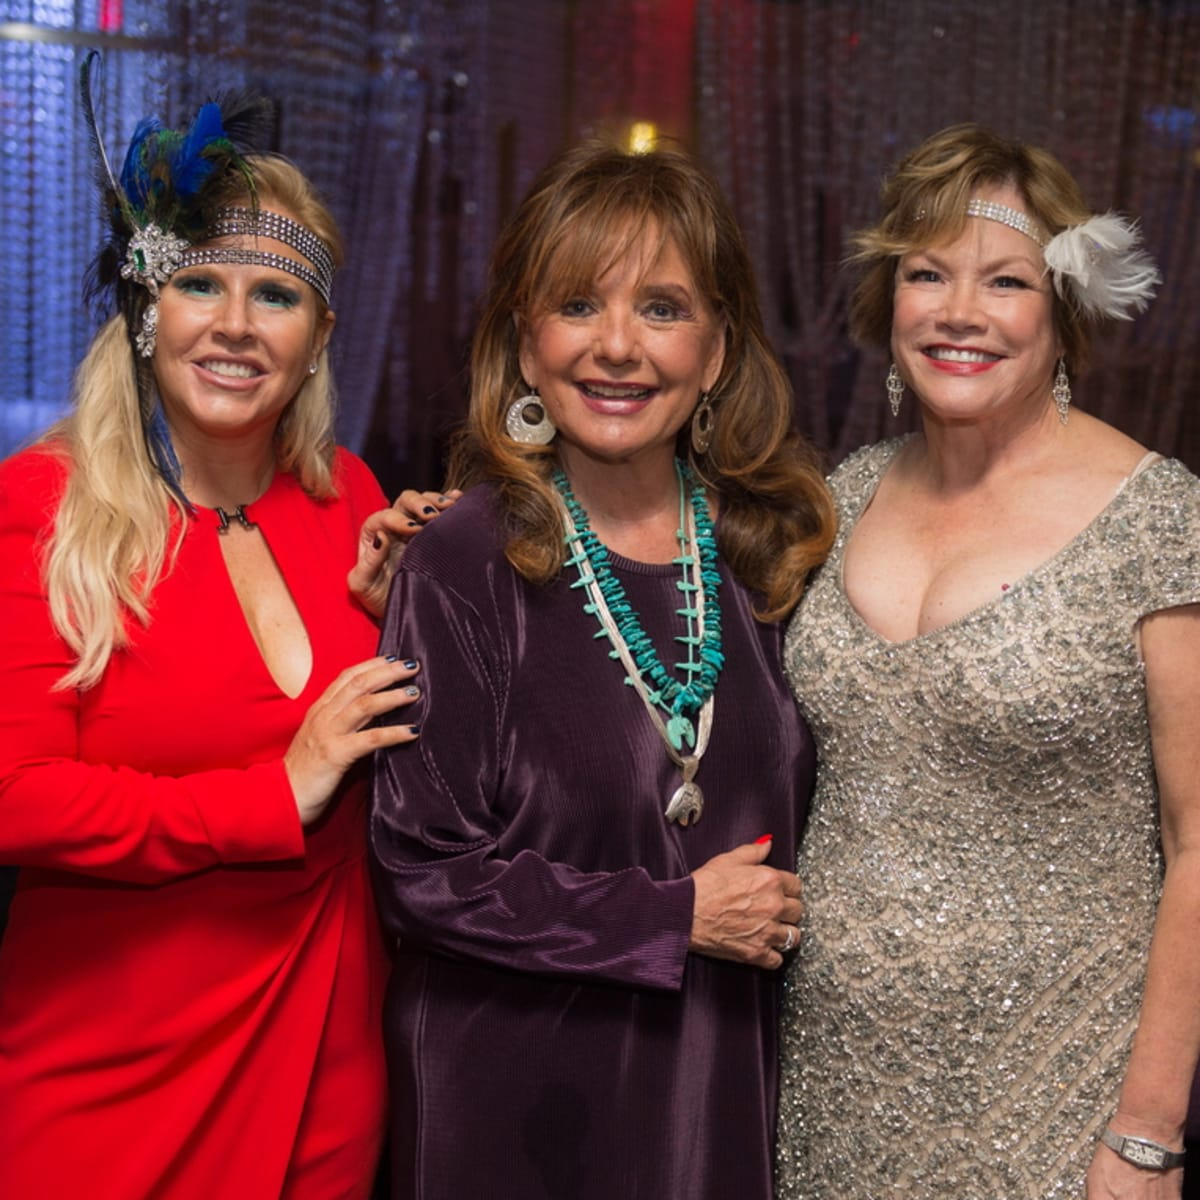 Arthritis Foundation Bone Bash Co-Chair Rita Beckett with & Dawn Wells-Mary Ann from Gilligan's Island & Co-char Robin Vann